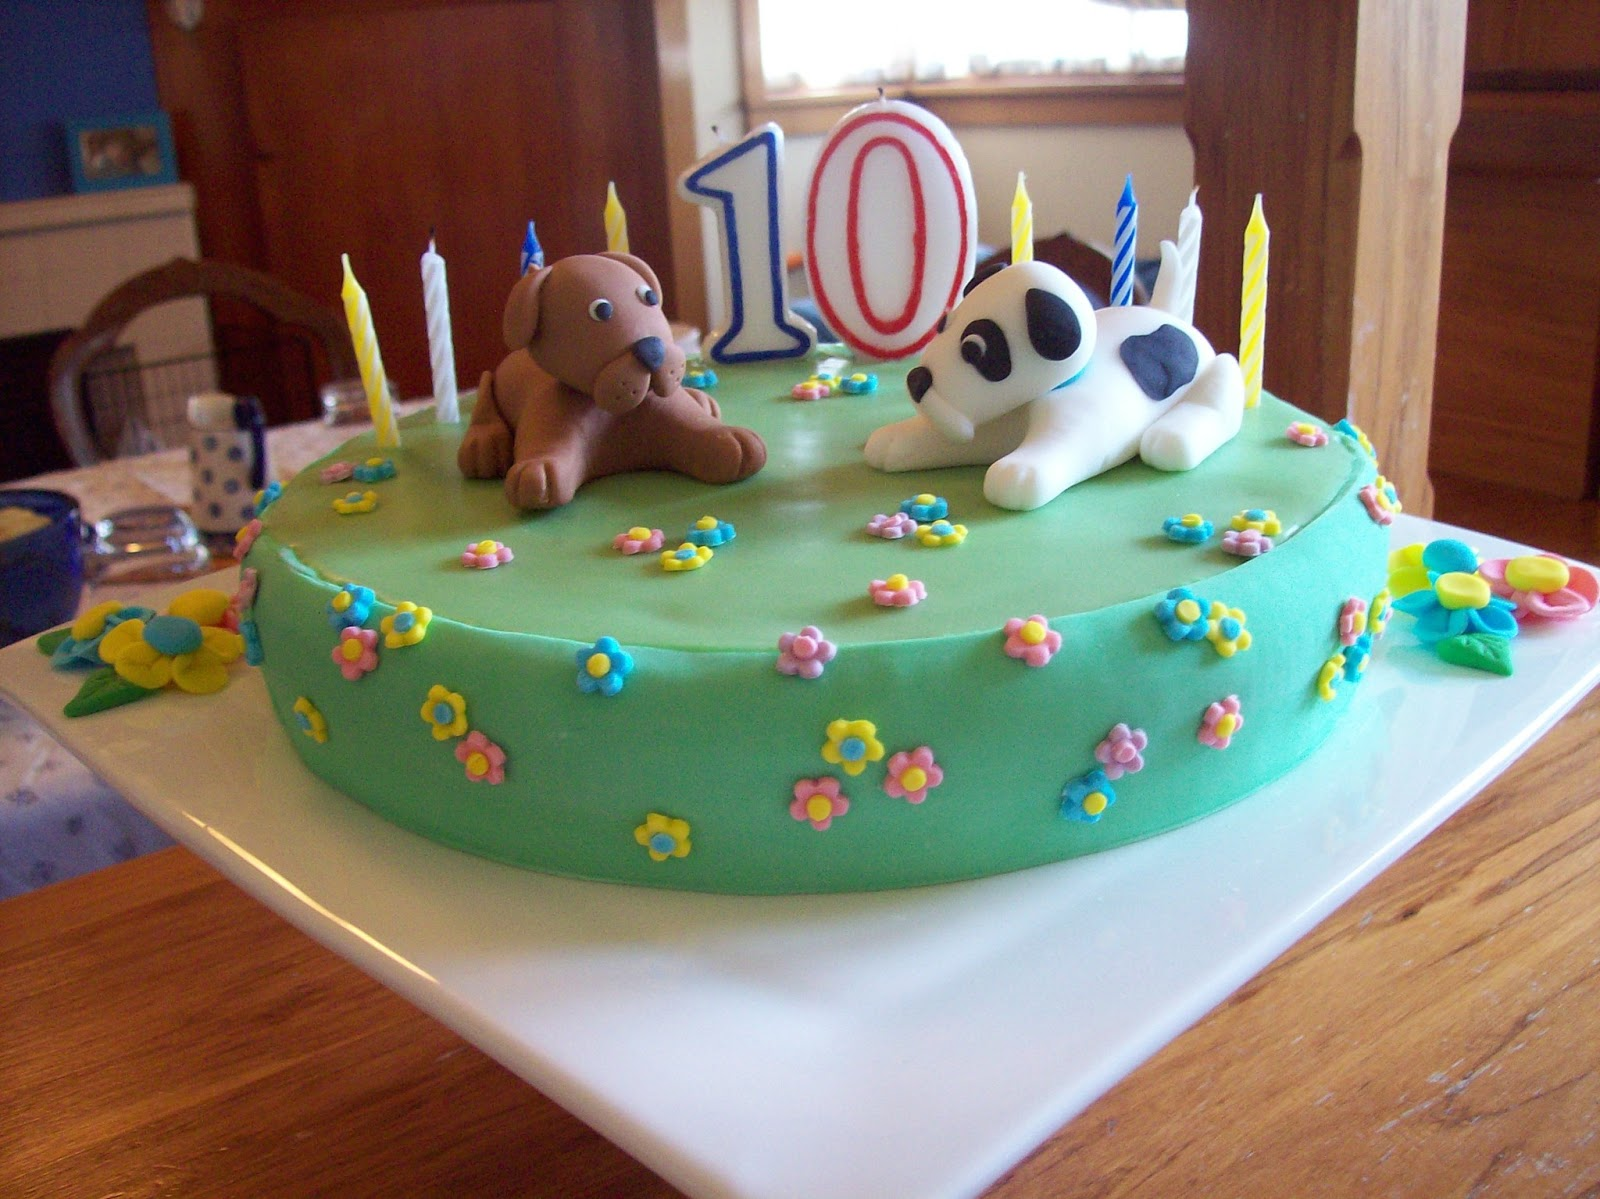 Puppy Birthday Cake Ideas & Puppy Cakes u2013 Decoration Ideas | Little Birthday Cakes